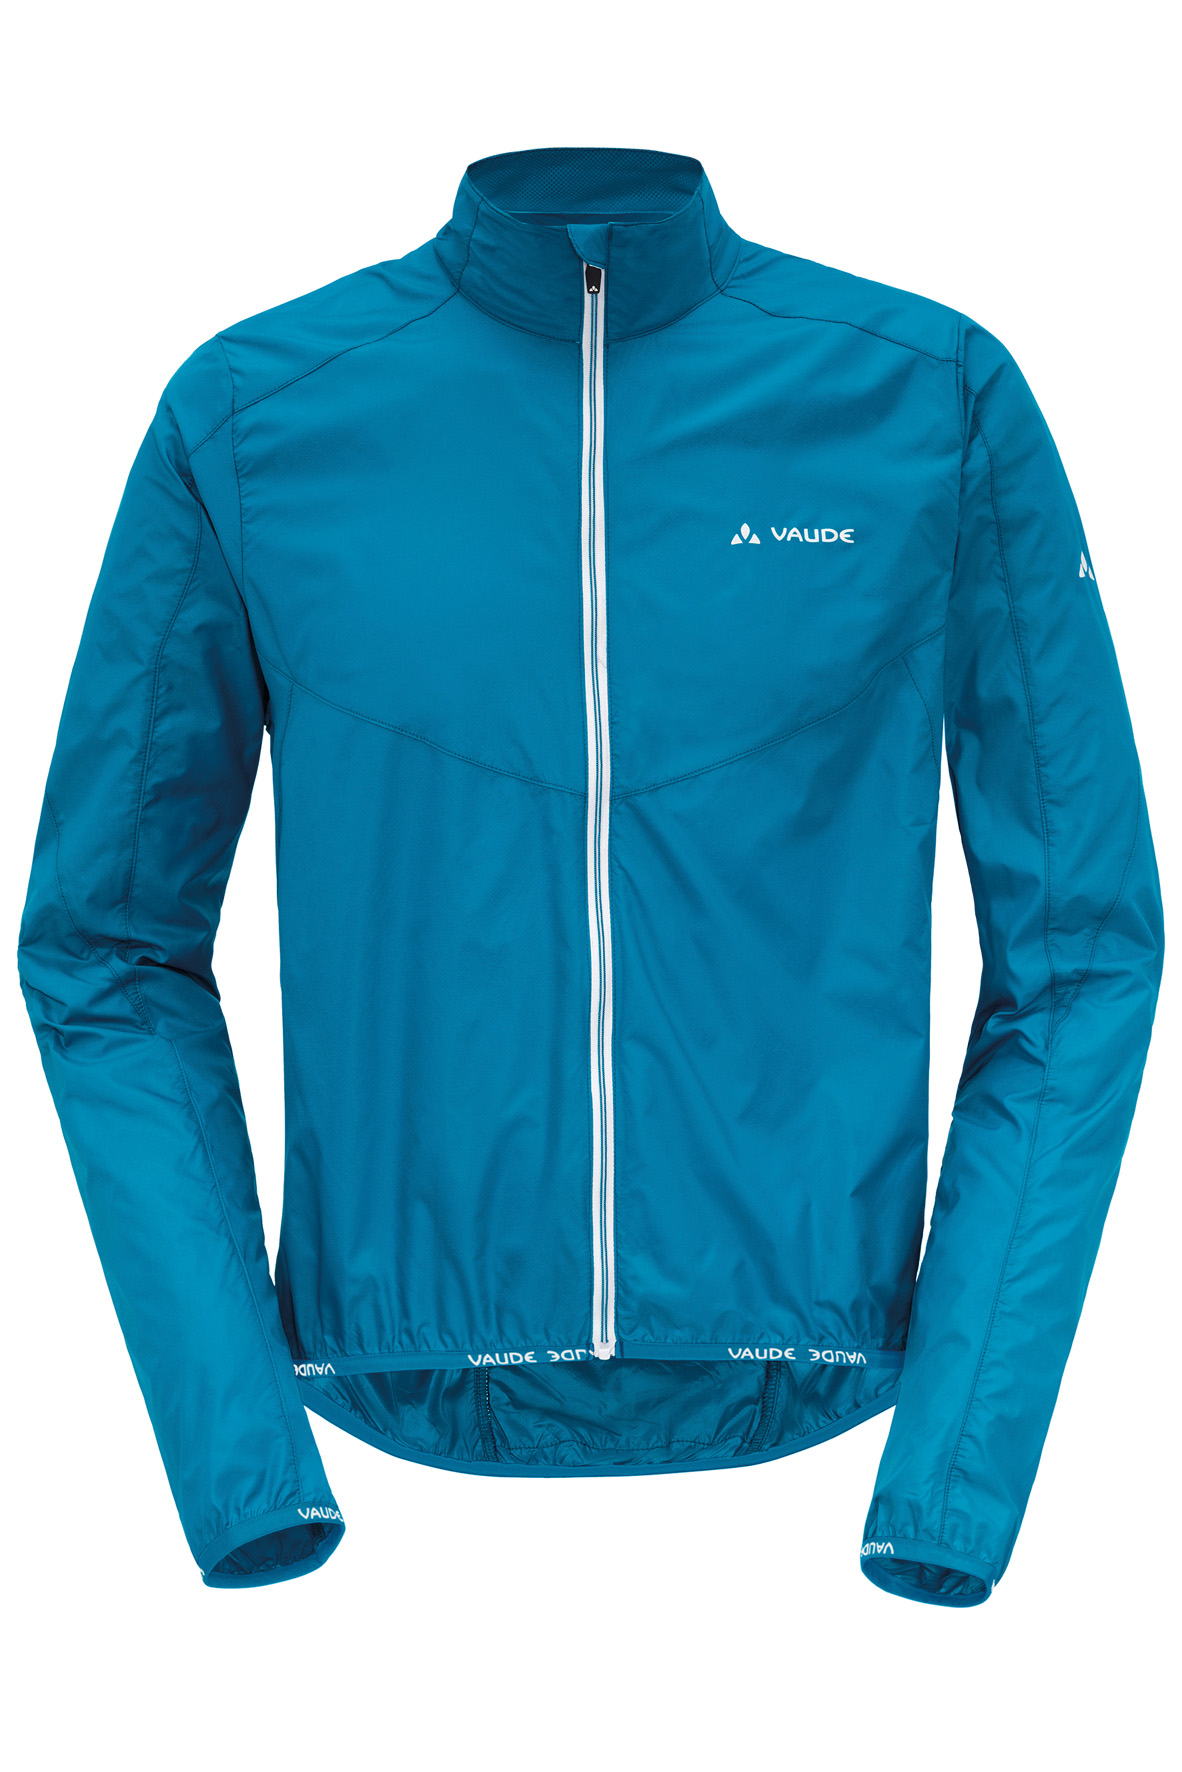 Men´s Air Jacket II teal blue Größe S - schneider-sports